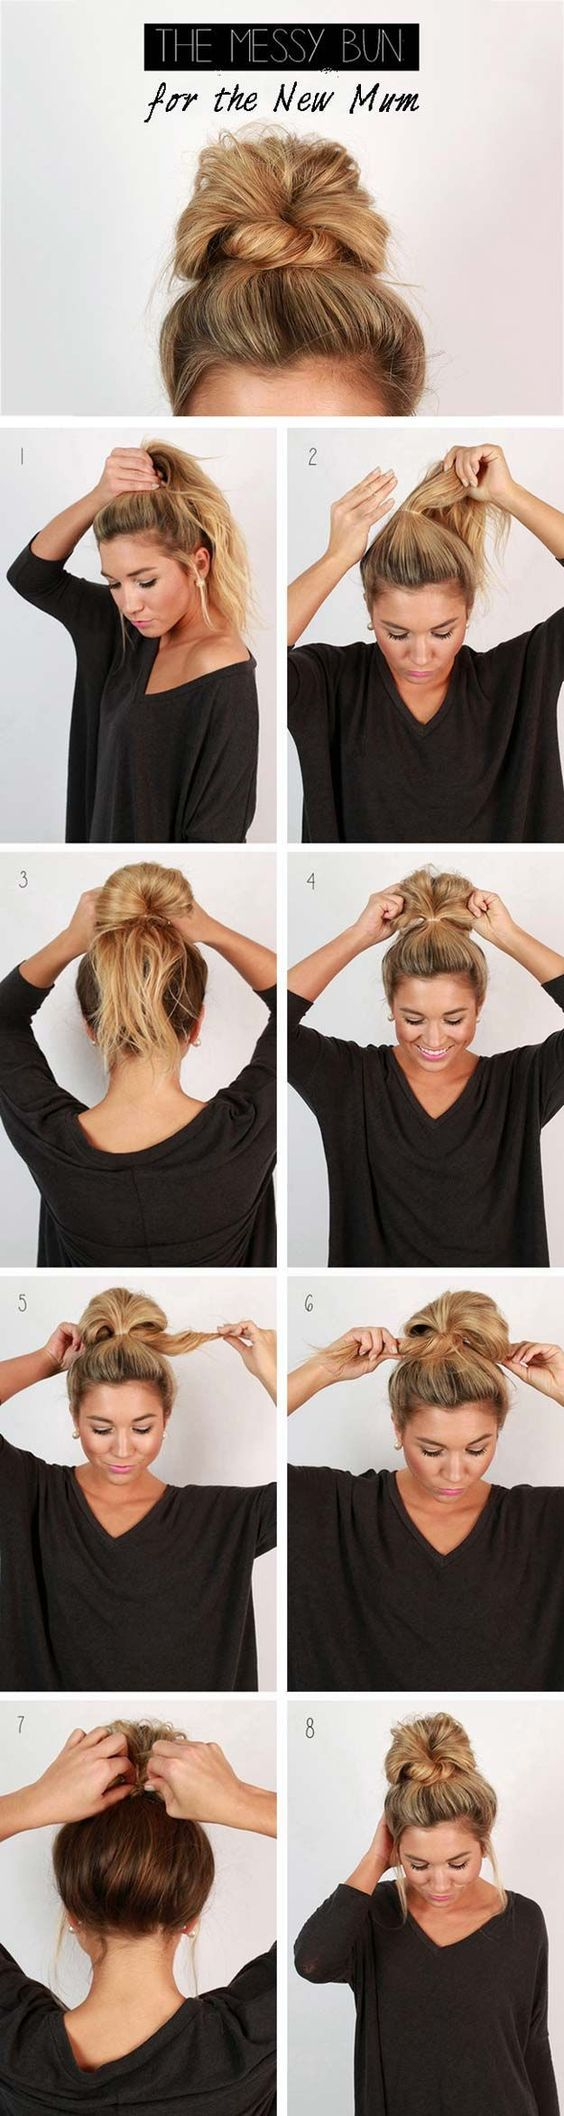 Cool And Easy Diy Hairstyles Messy Bun Quick And Easy Ideas For Back To School Styles For Medium Sh Long Hair Styles Hair Styles Medium Length Hair Styles